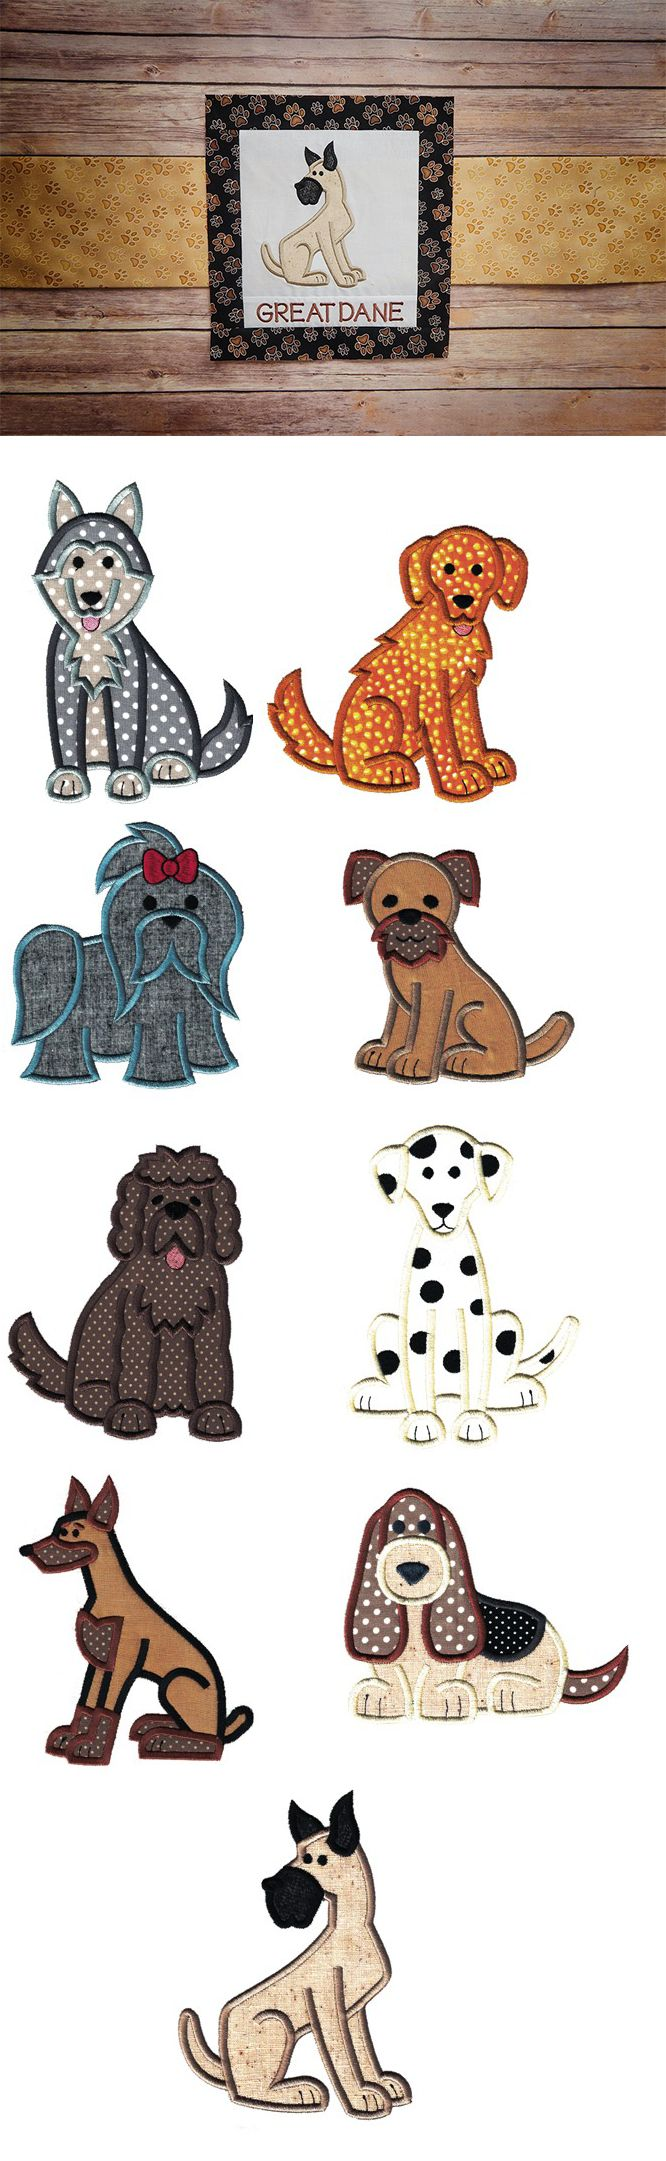 Top Dogs Applique Set 1 design set is available for instant download at designsbyjuju.com